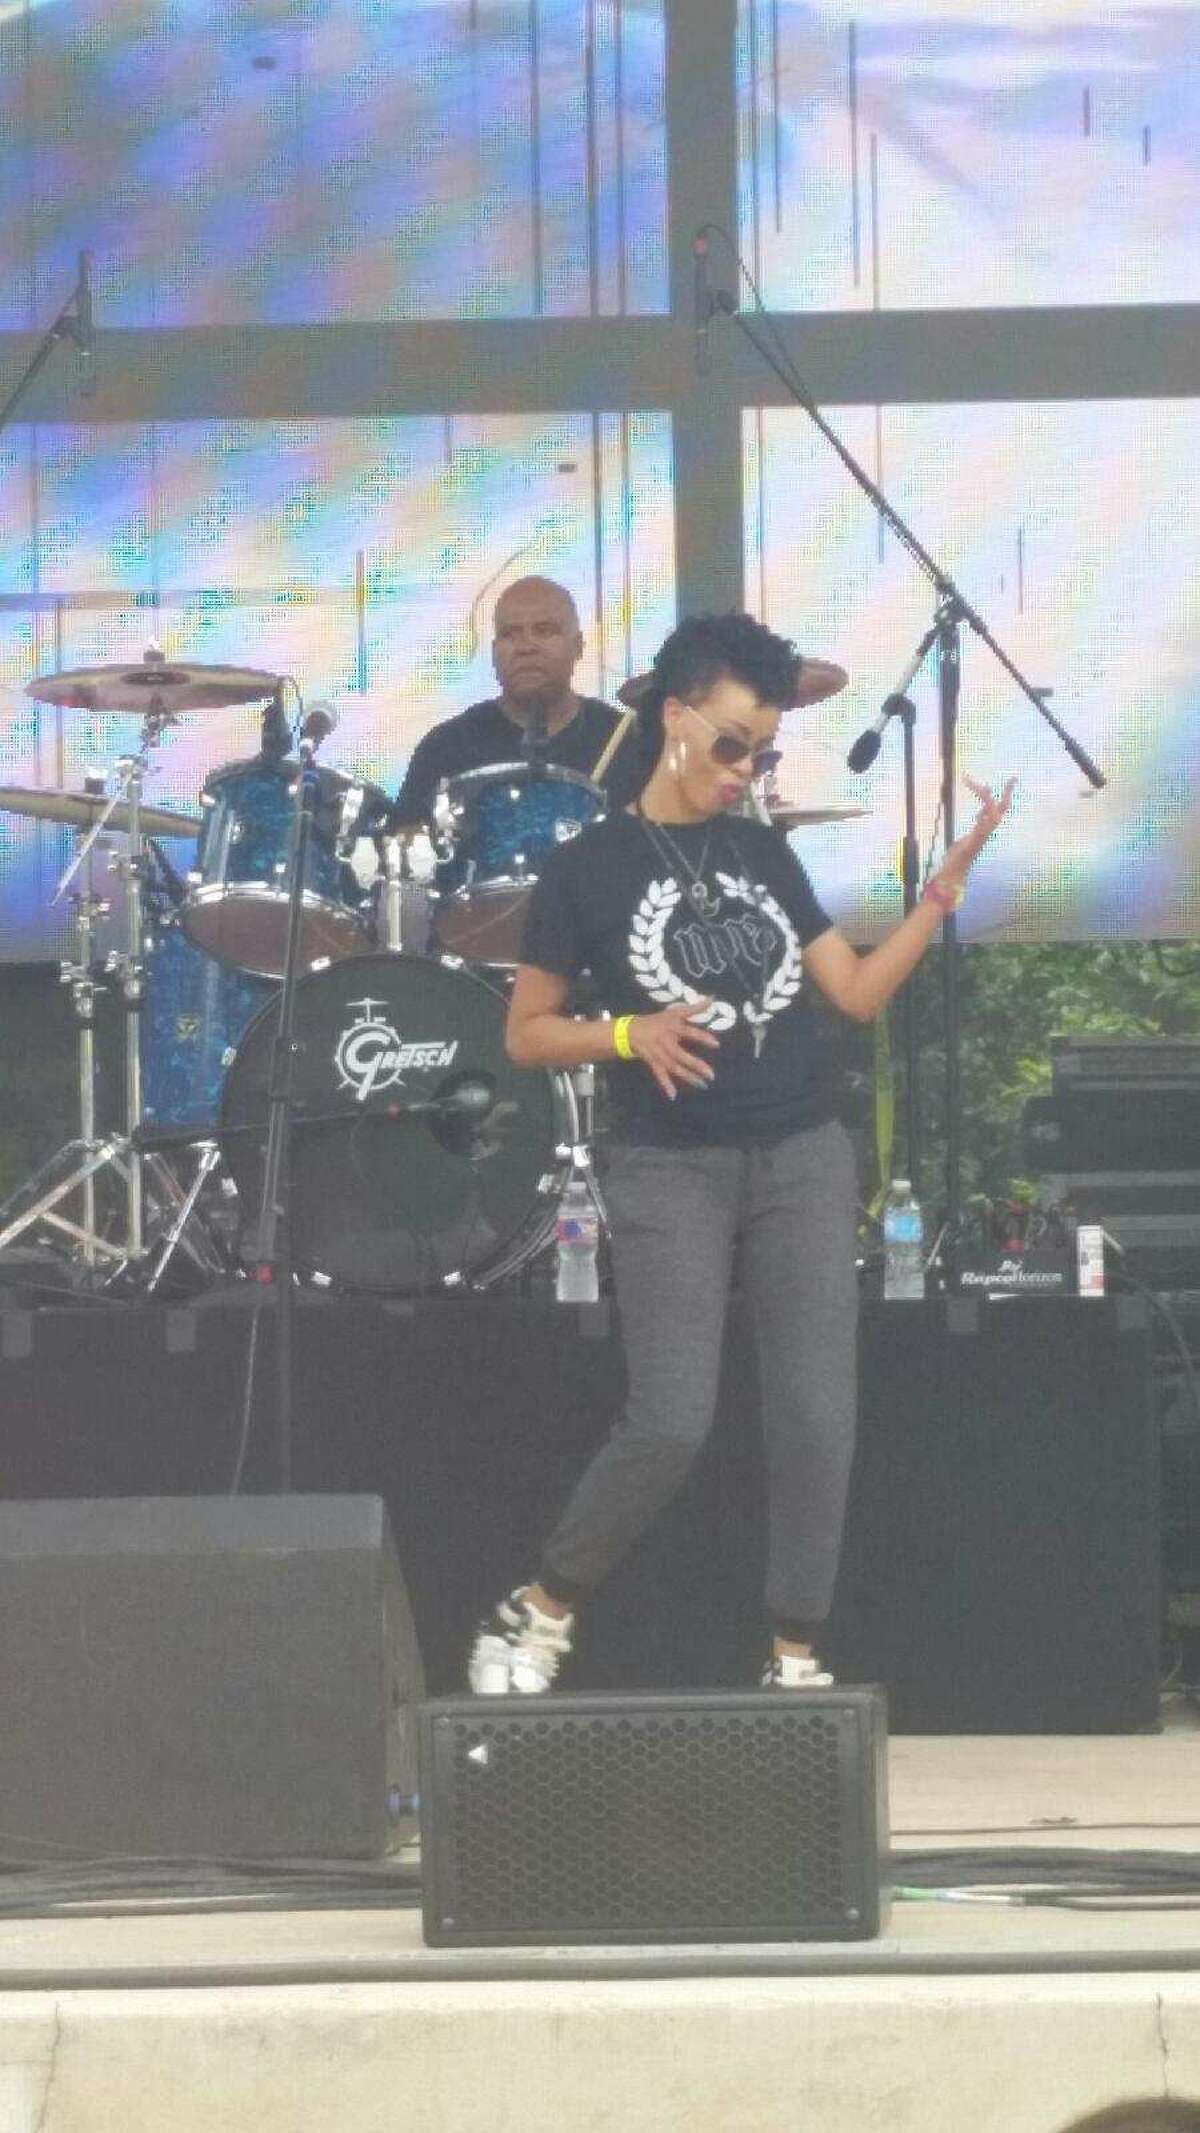 Niki Symone performing at Taste of New Orleans in April 2015. Symone is a San Antonio native R&B singer and hair stylist.